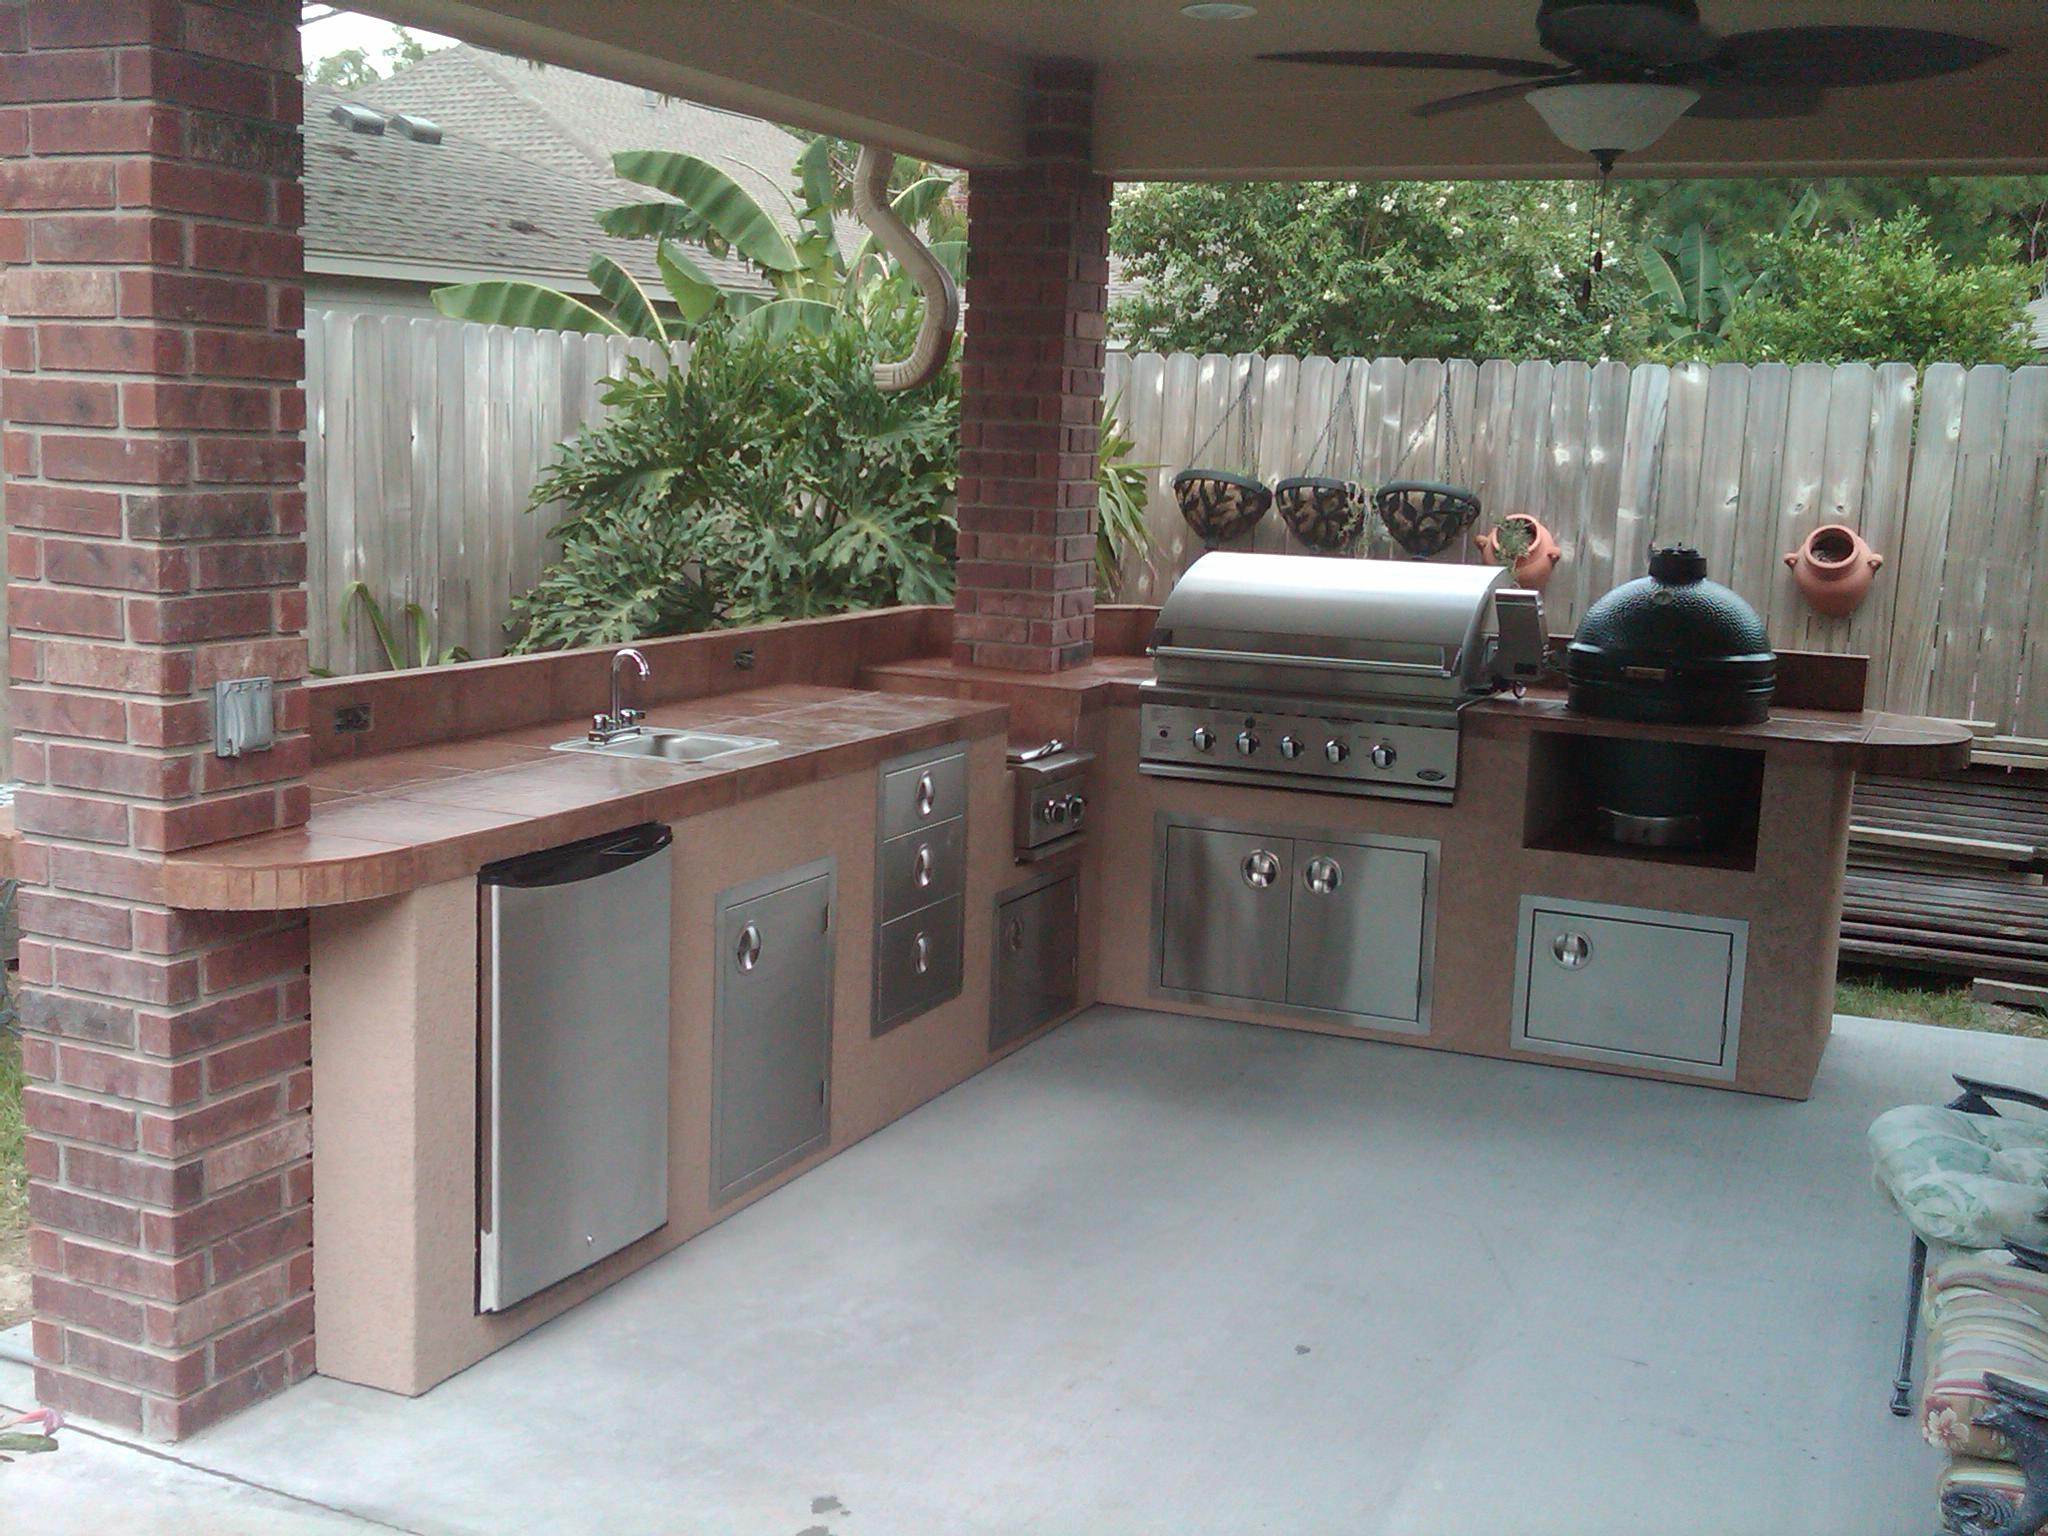 outdoor kitchen equipment outside outdoor kitchen under patio cover equipment houston gas grills